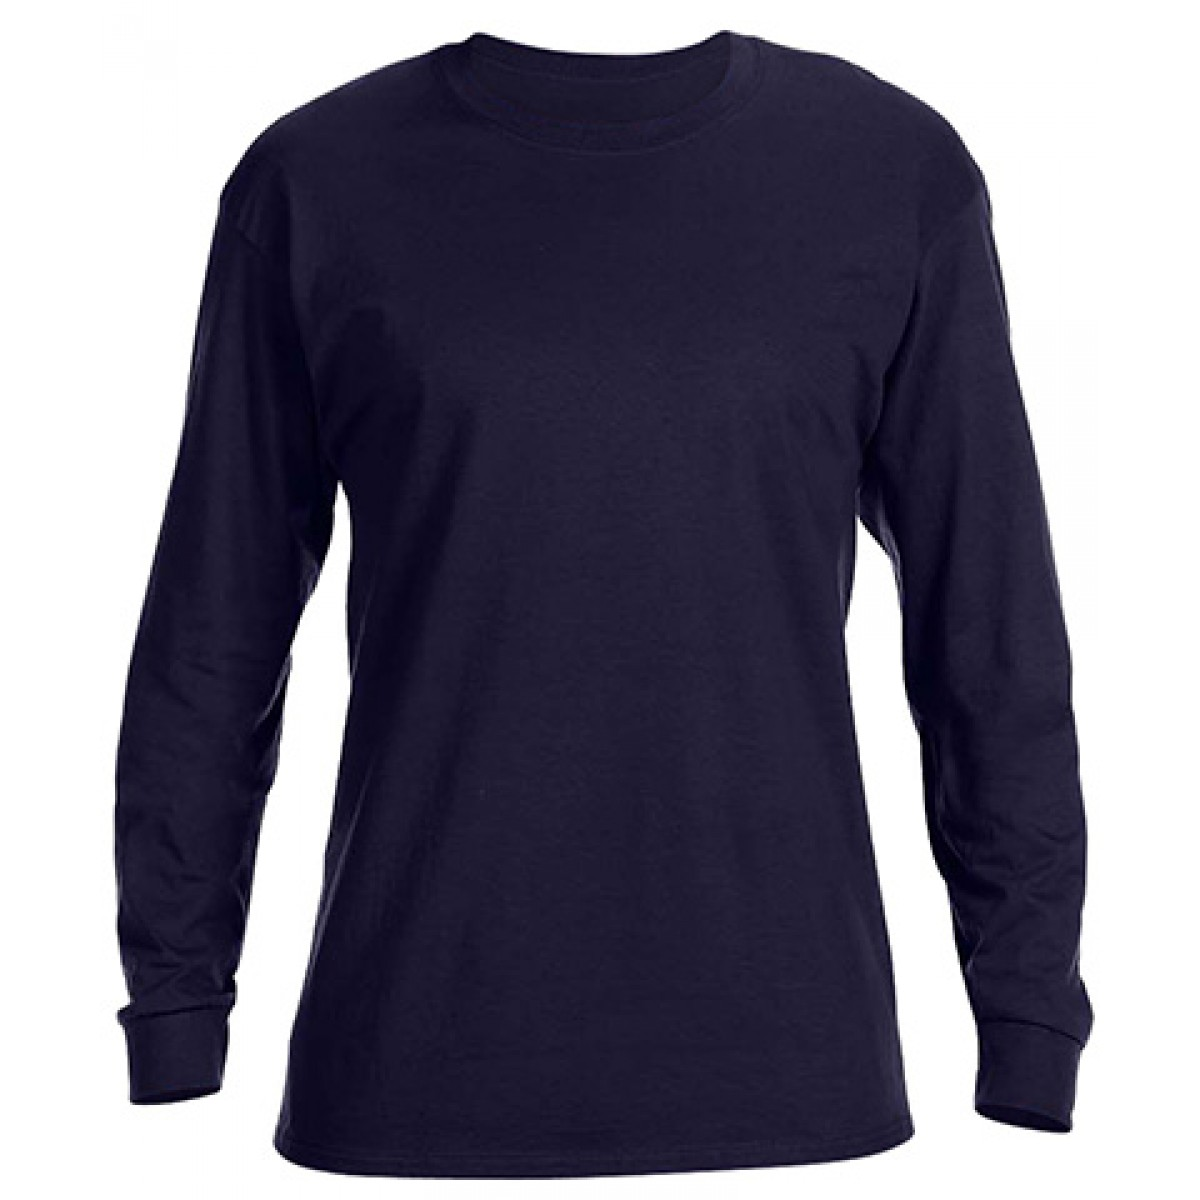 Basic Long Sleeve Crew Neck -Navy-S